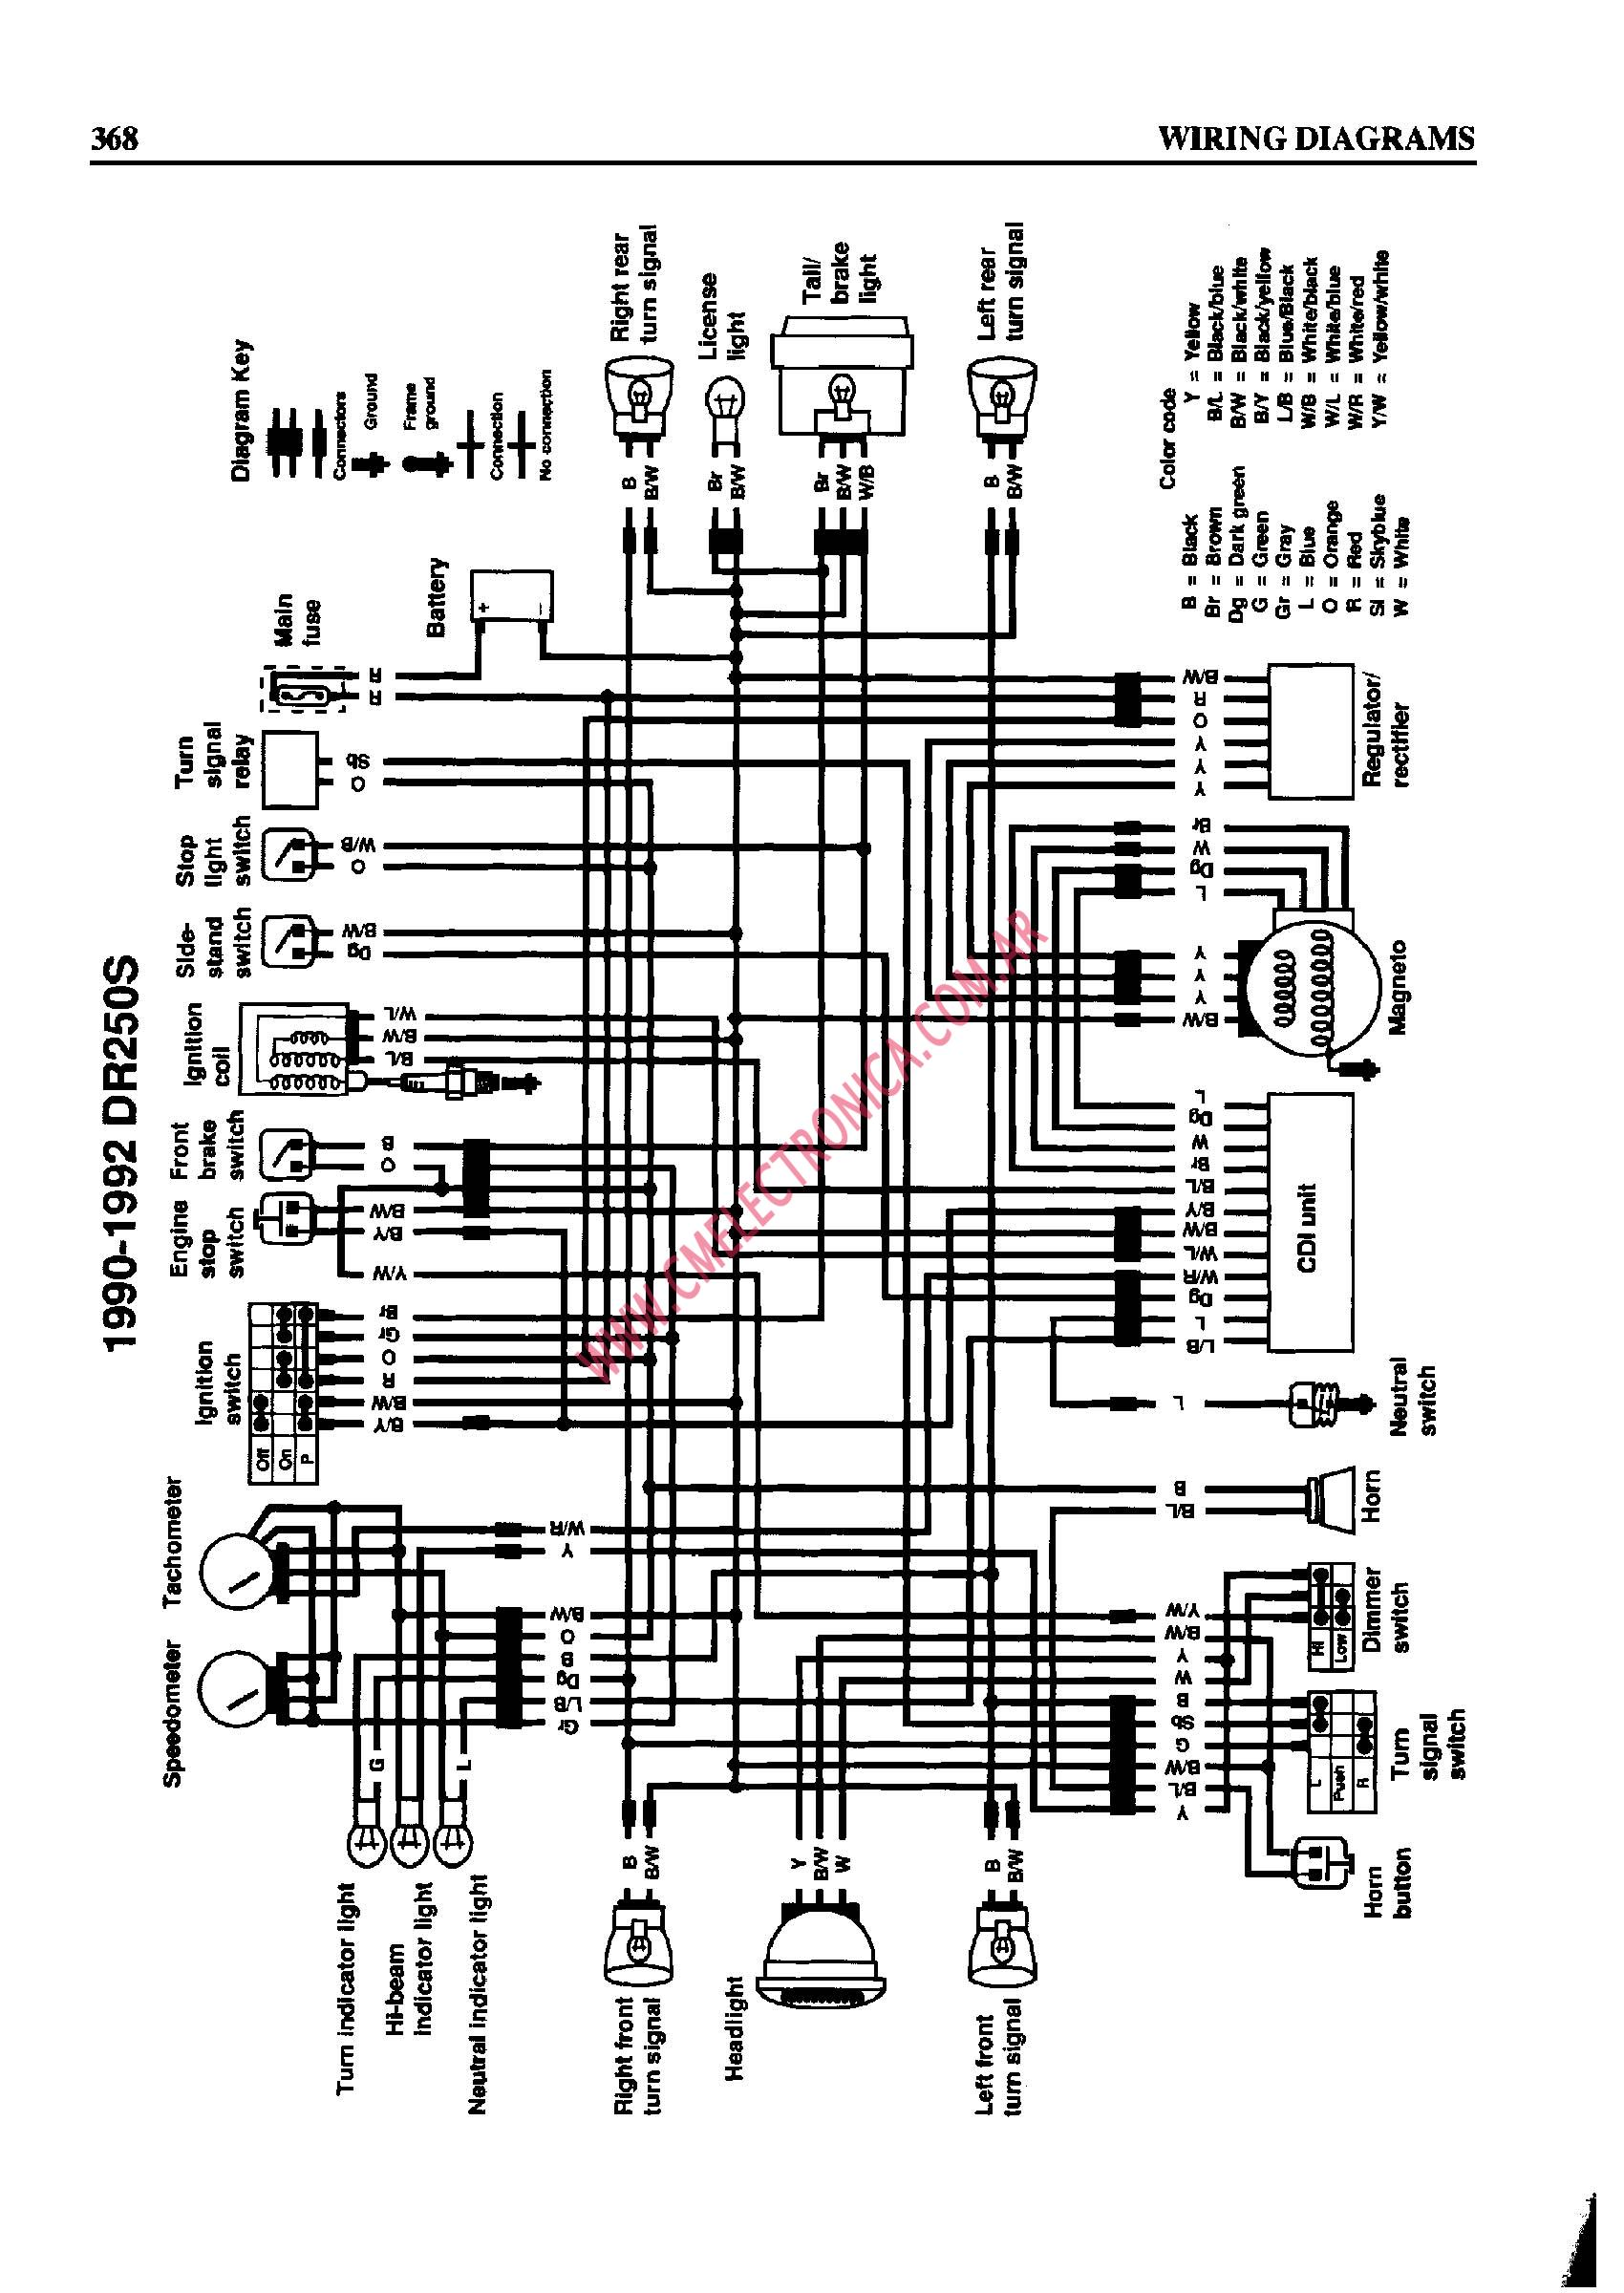 mercedes sl600 wiring diagram mercedes timing marks wiring